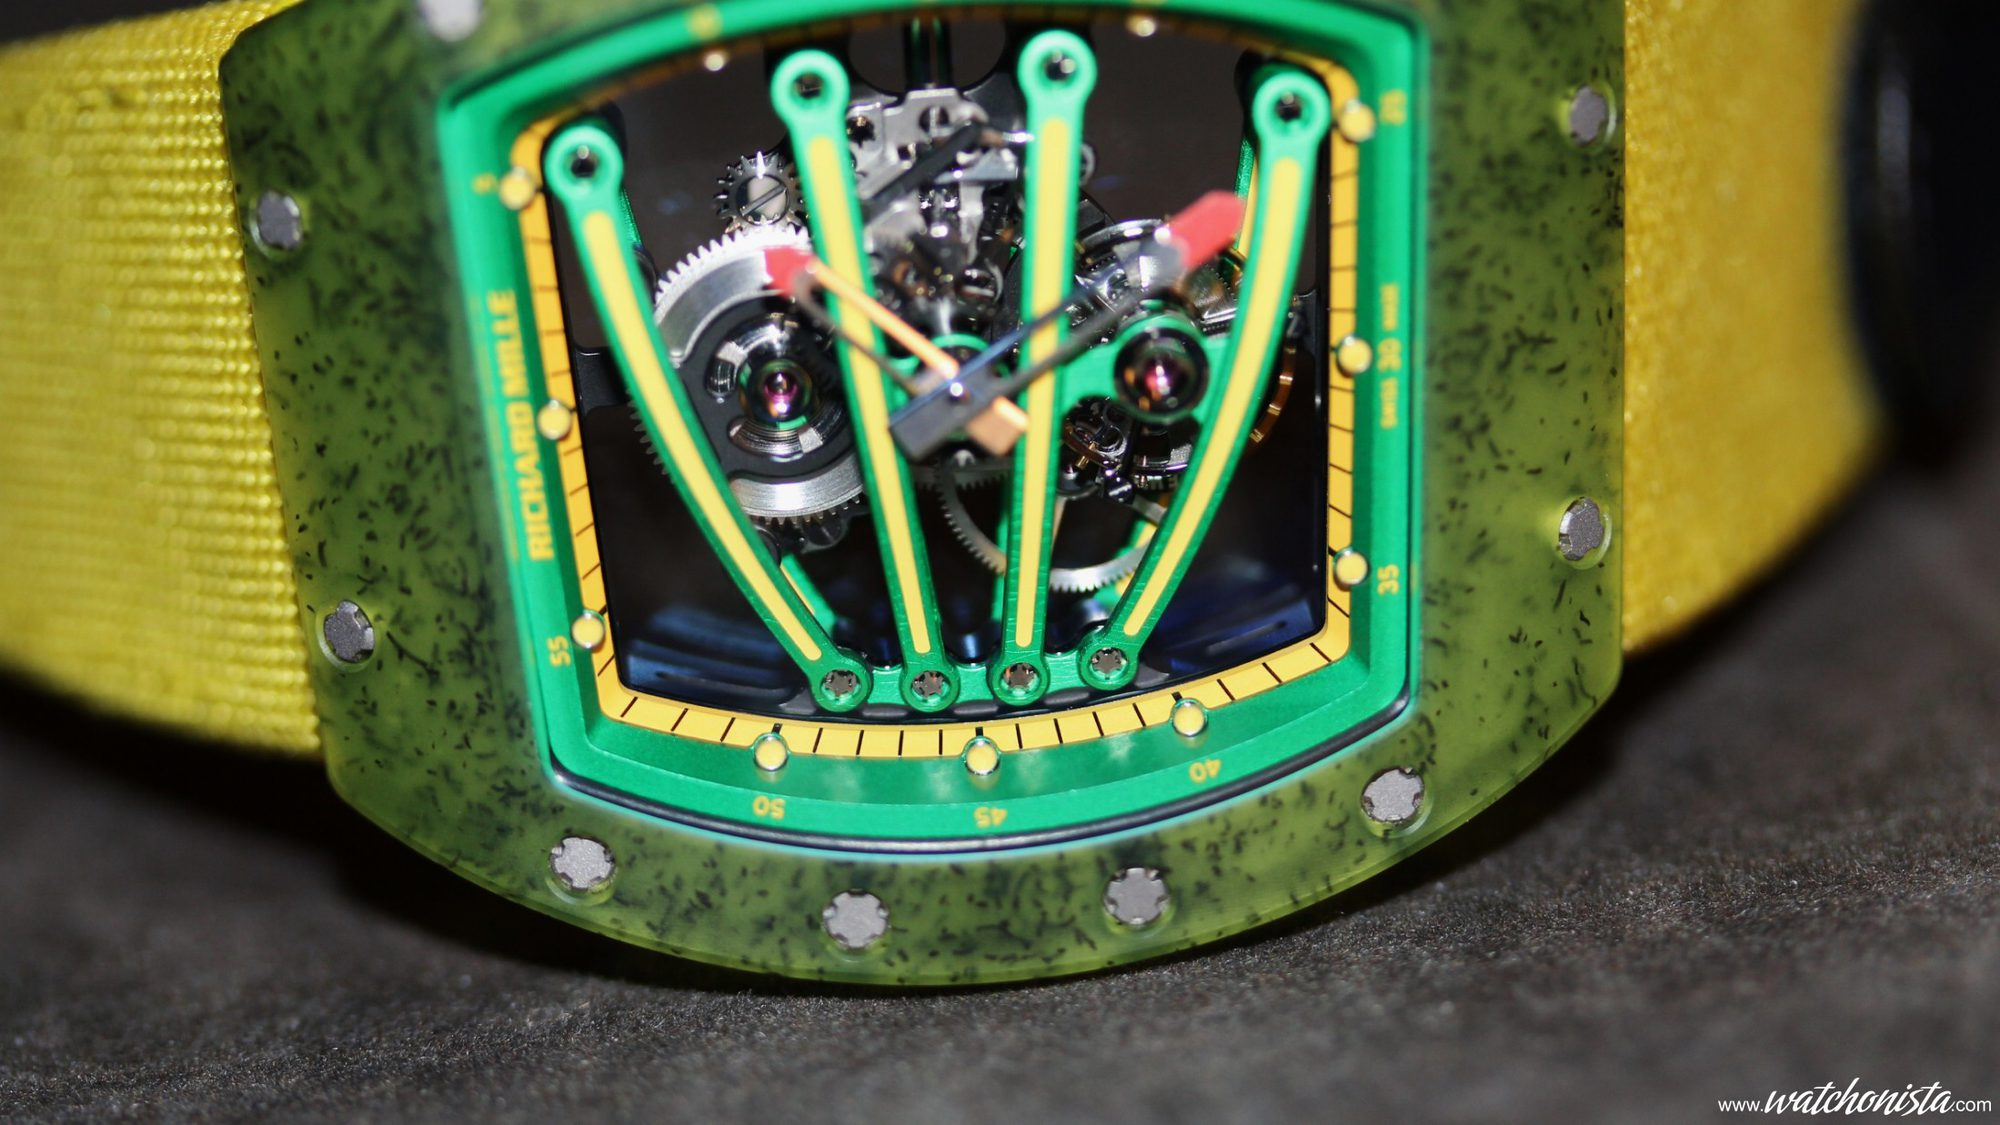 Richard Mille RM 056 - The quest for the all-sapphire